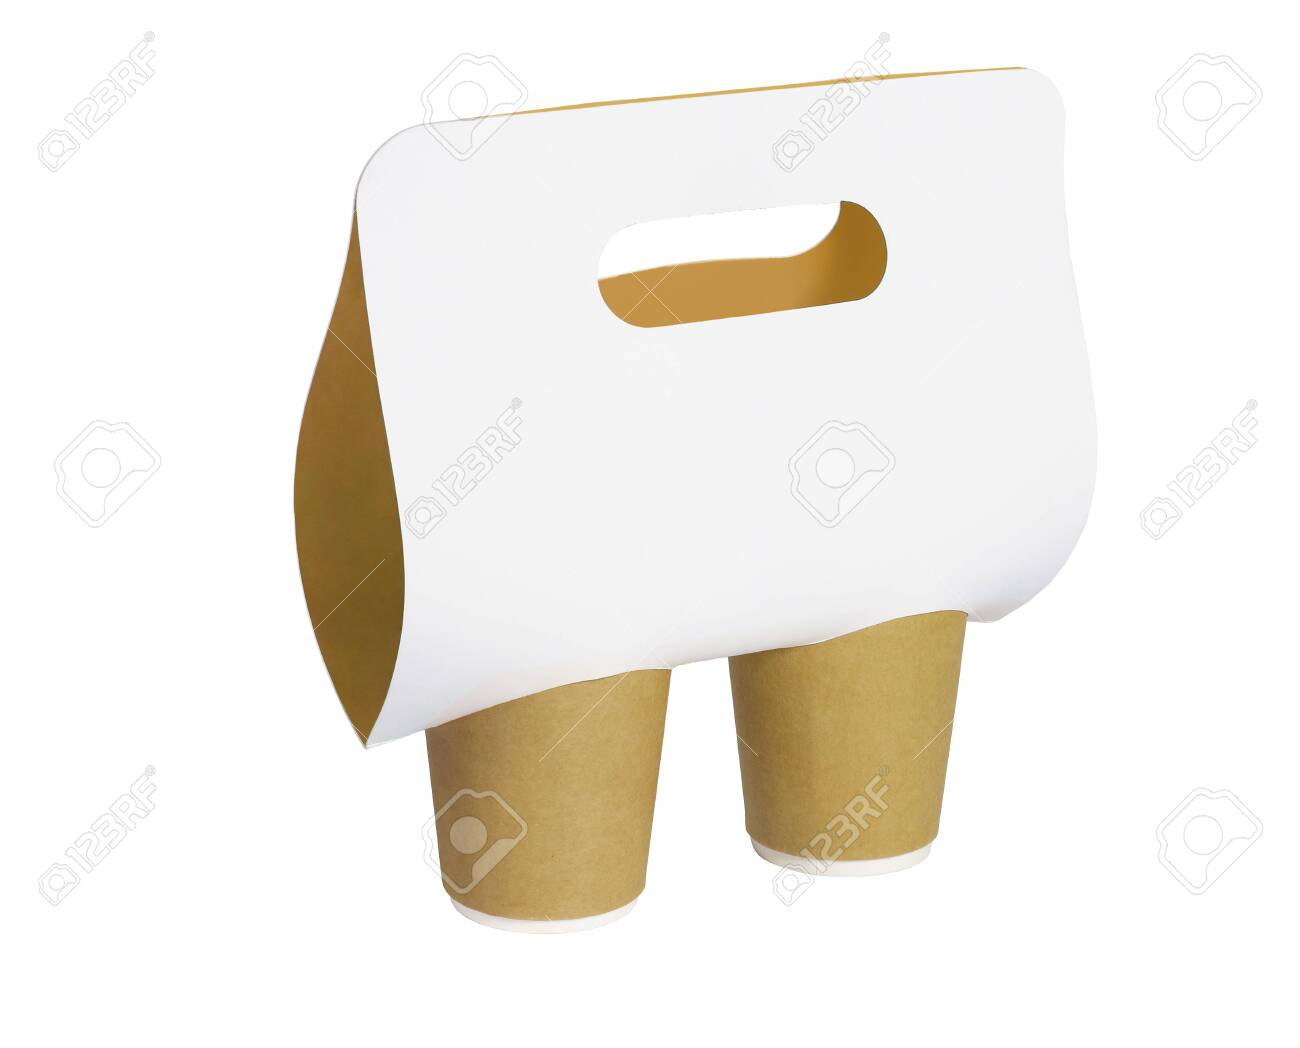 Paper Cups and Holder With Handle on White Background - 149591792